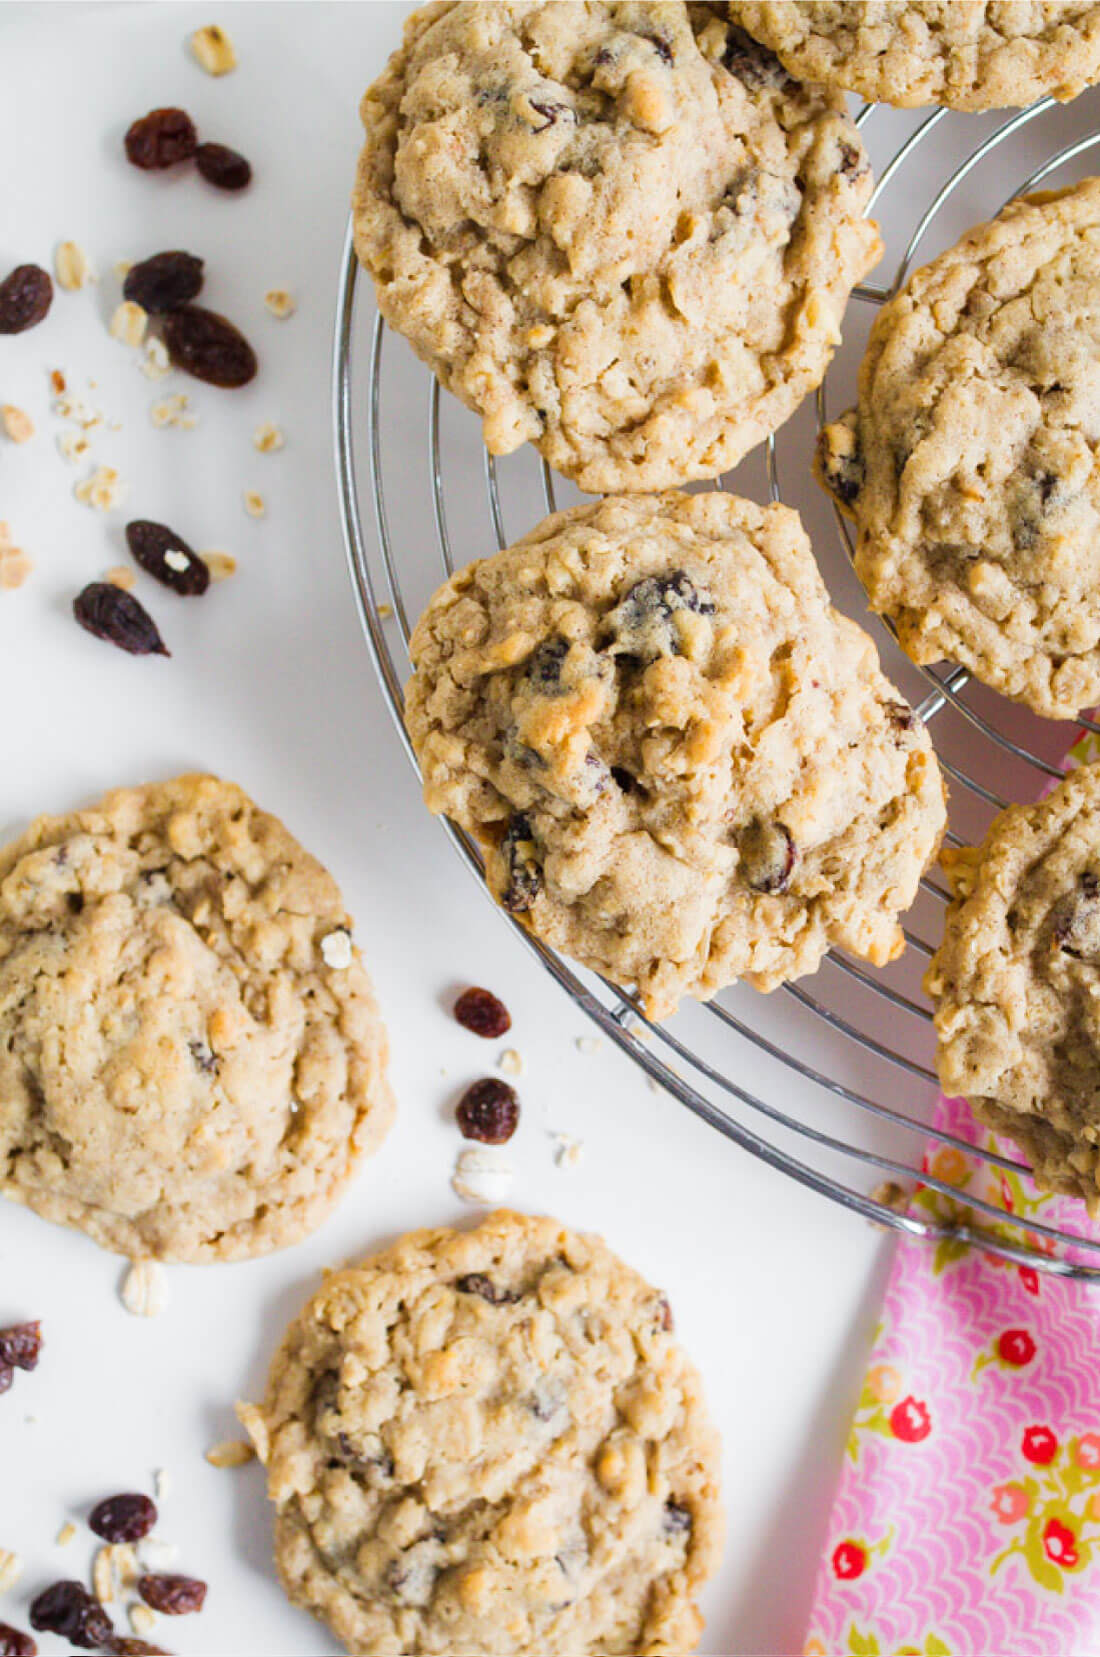 Oatmeal Raisin Cookies - the best cookies recipe you'll ever try from www.thirtyhandmadedays.com